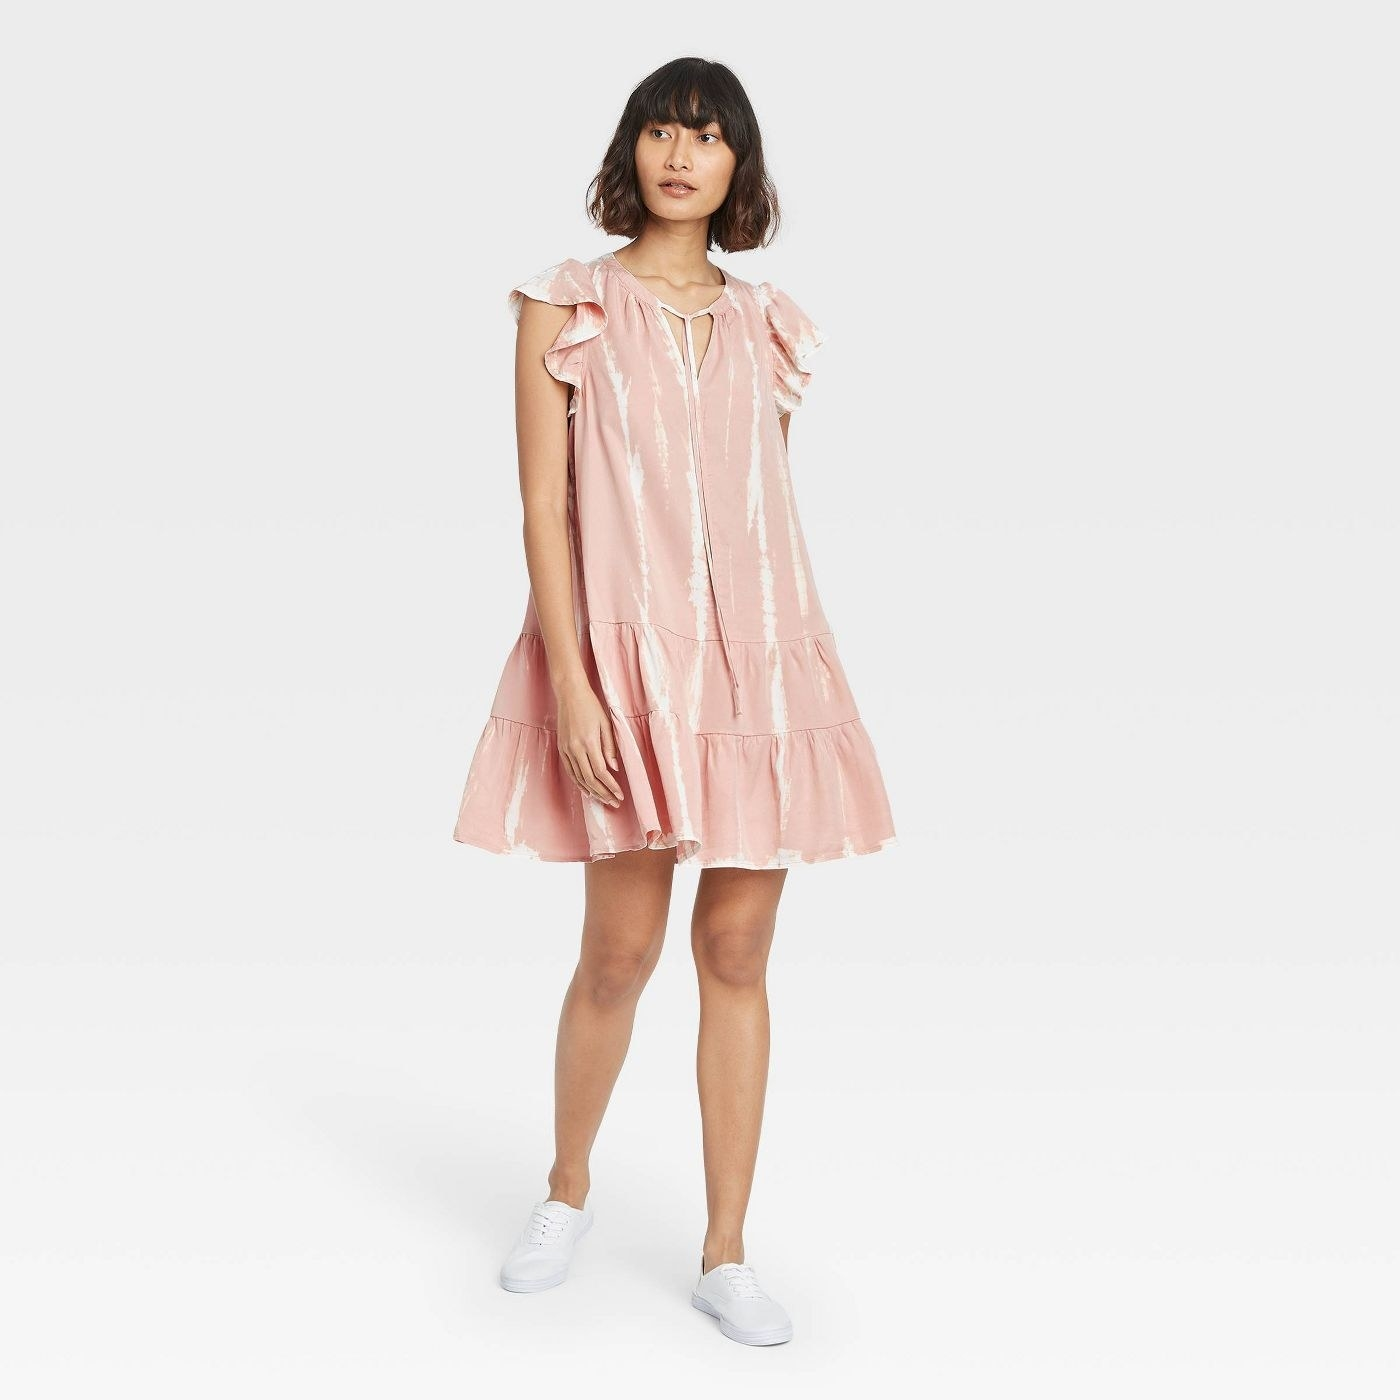 Model wearing baby pink dress that stop above the knee